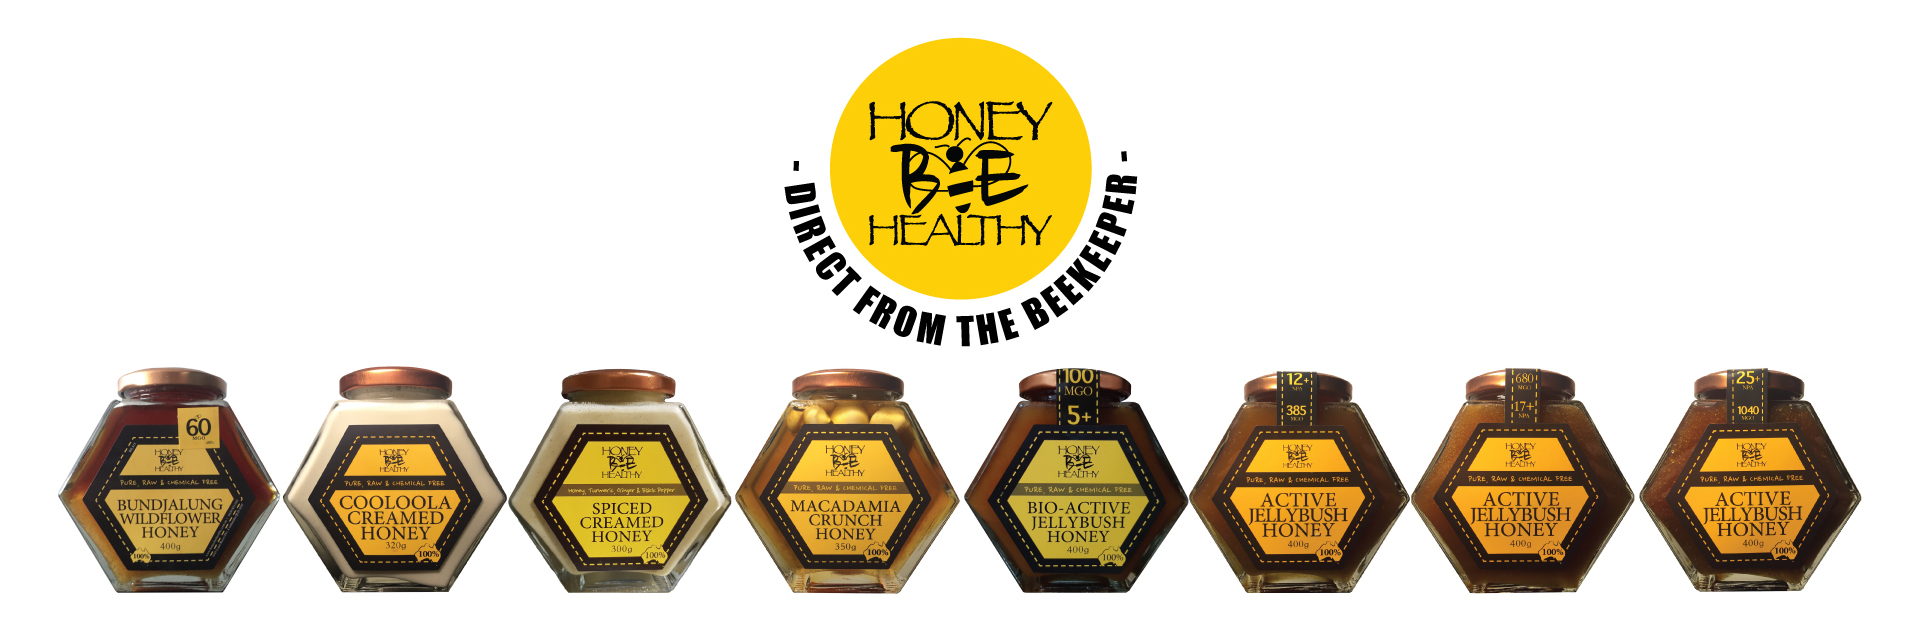 Find Honey Bee Healthy at the Eco Expo